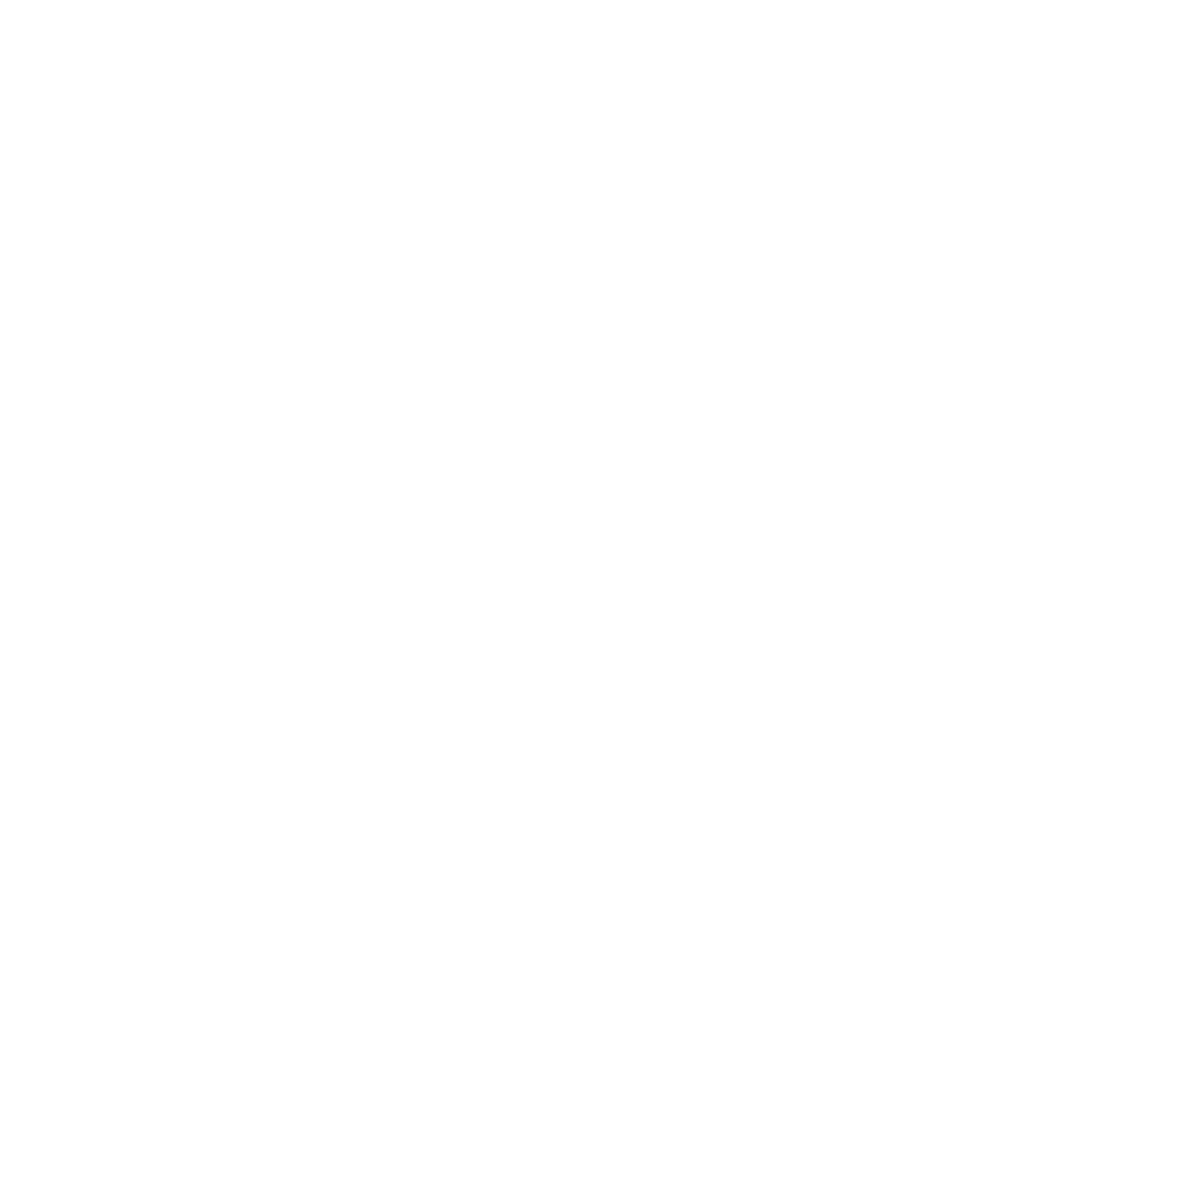 - Red Hill Entertainment is the event promotor and team behind Land of Plenty Festival. Made up of the widely respected McLaren Brothers from The Hills Are Alive Group and independent music company, UNIFIED Music Group.